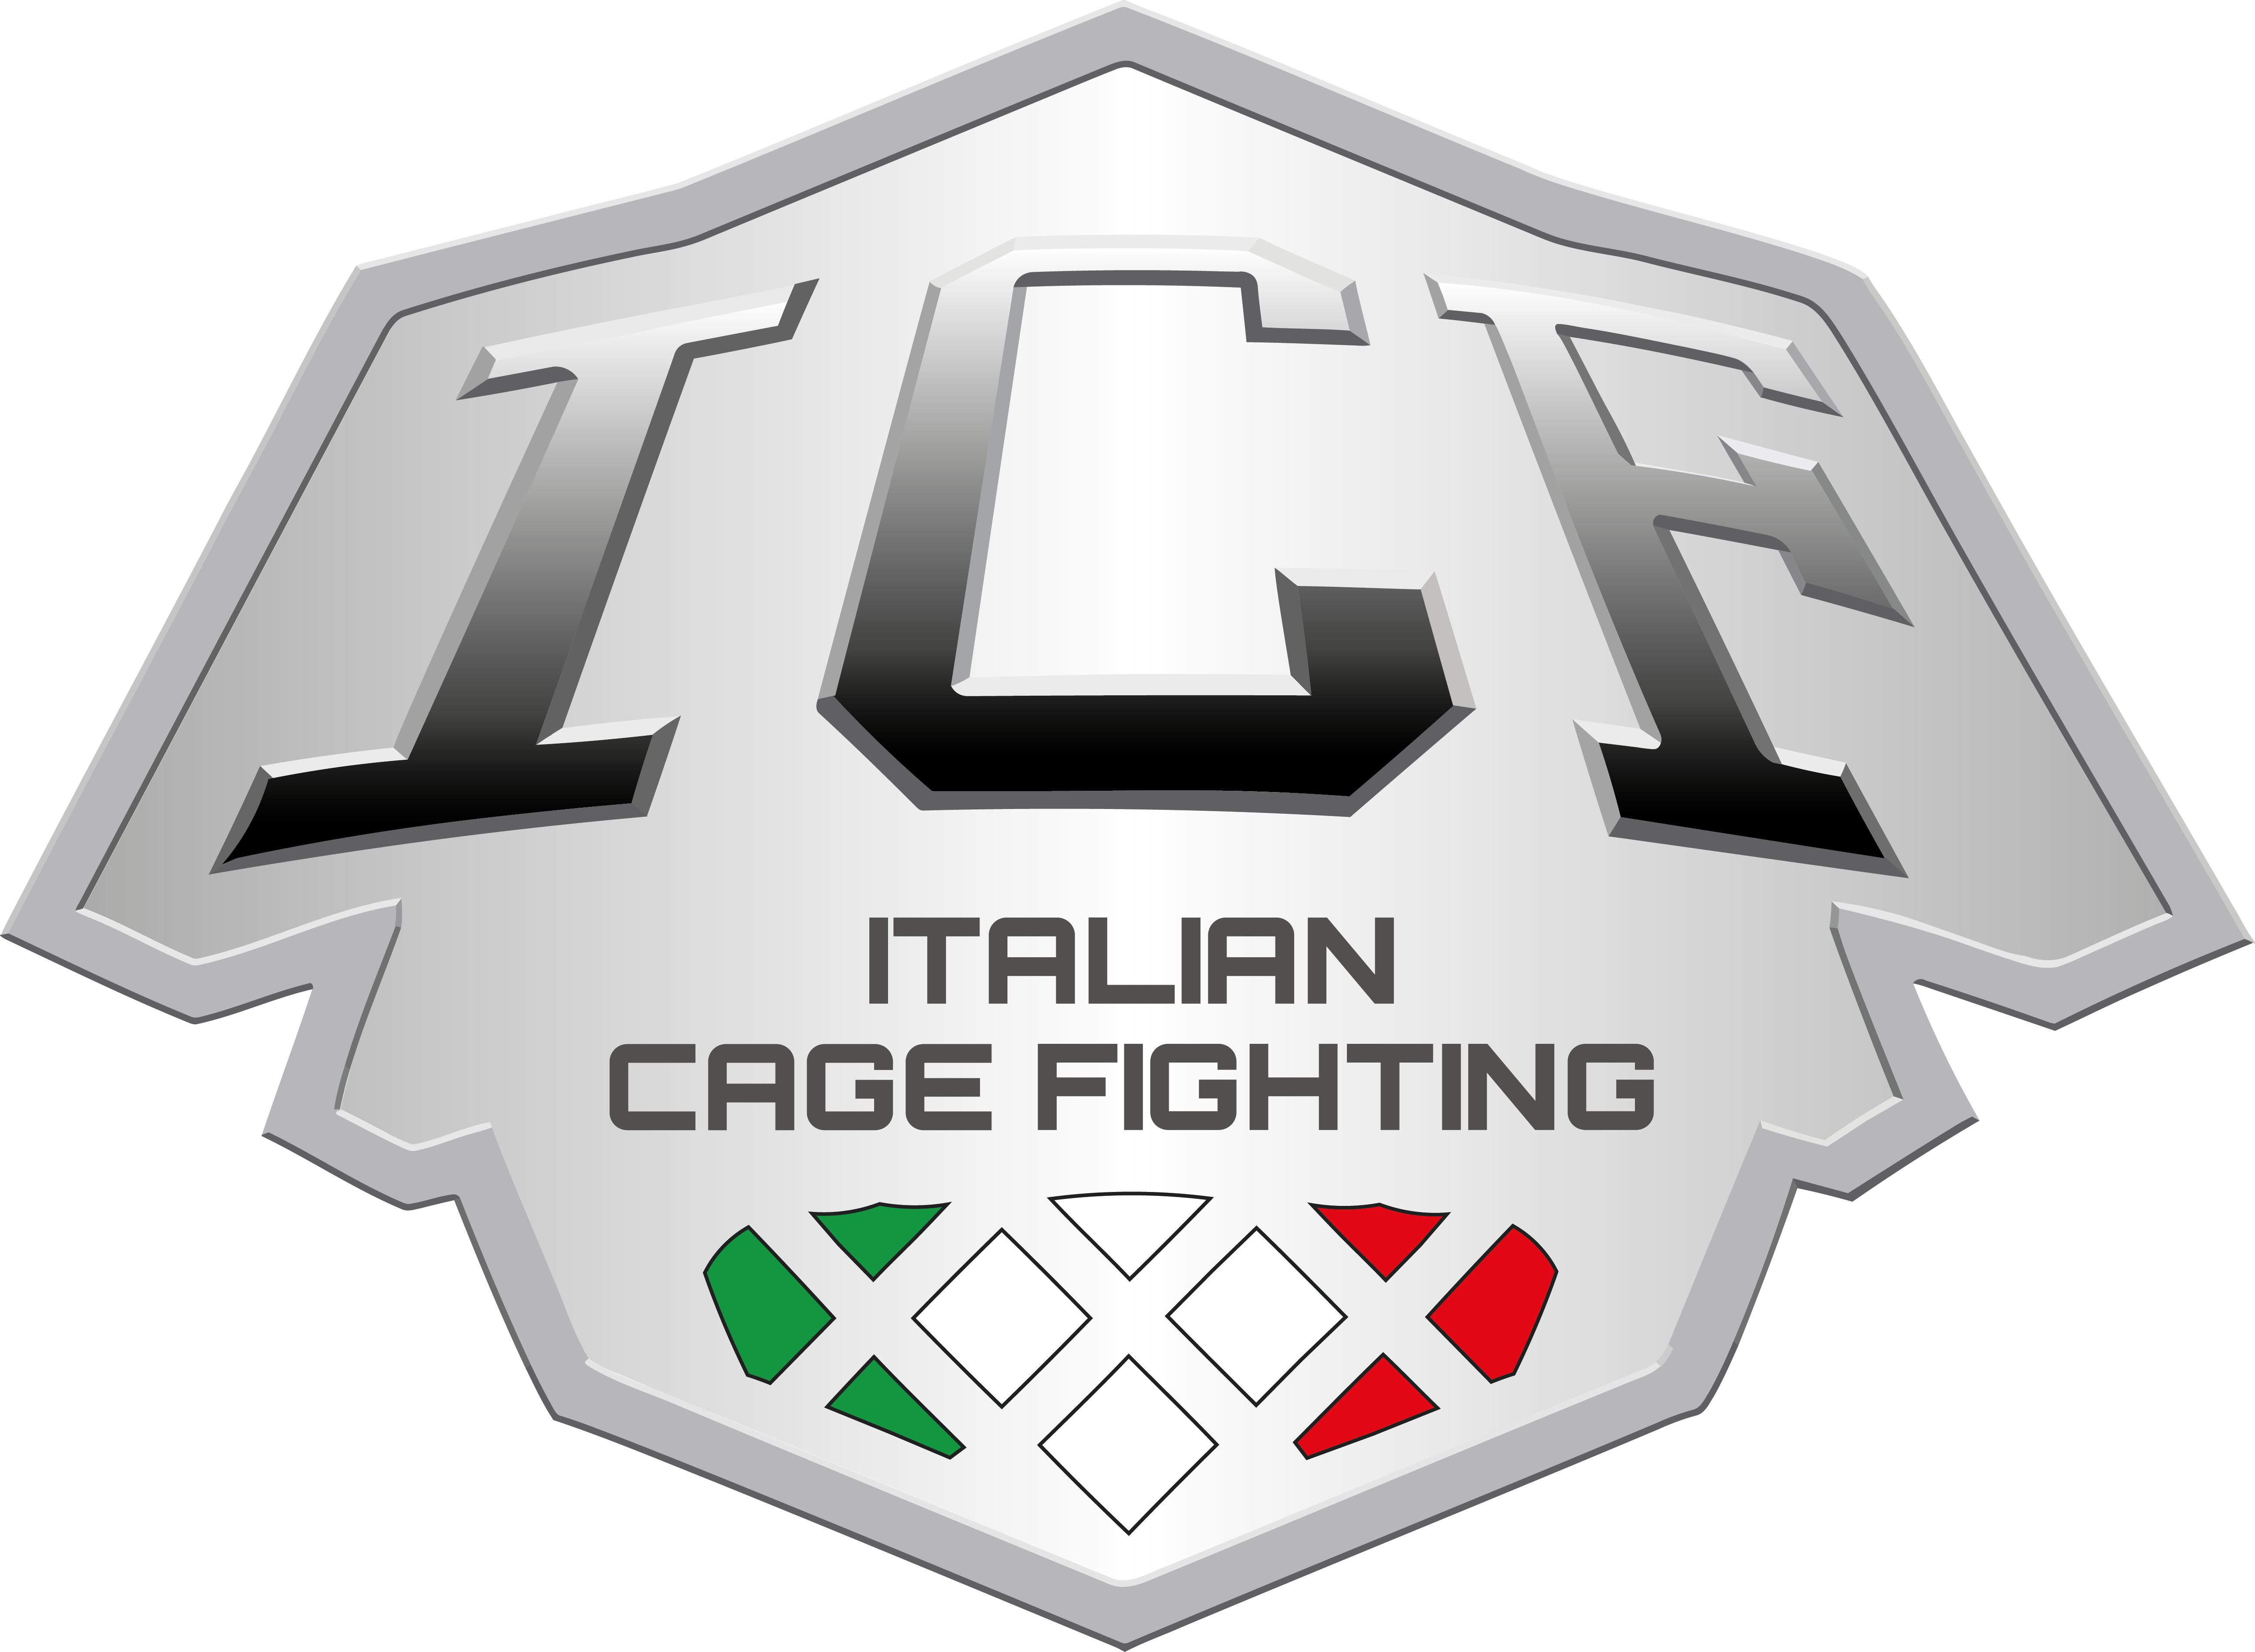 ITALIAN CAGE FIGHTING